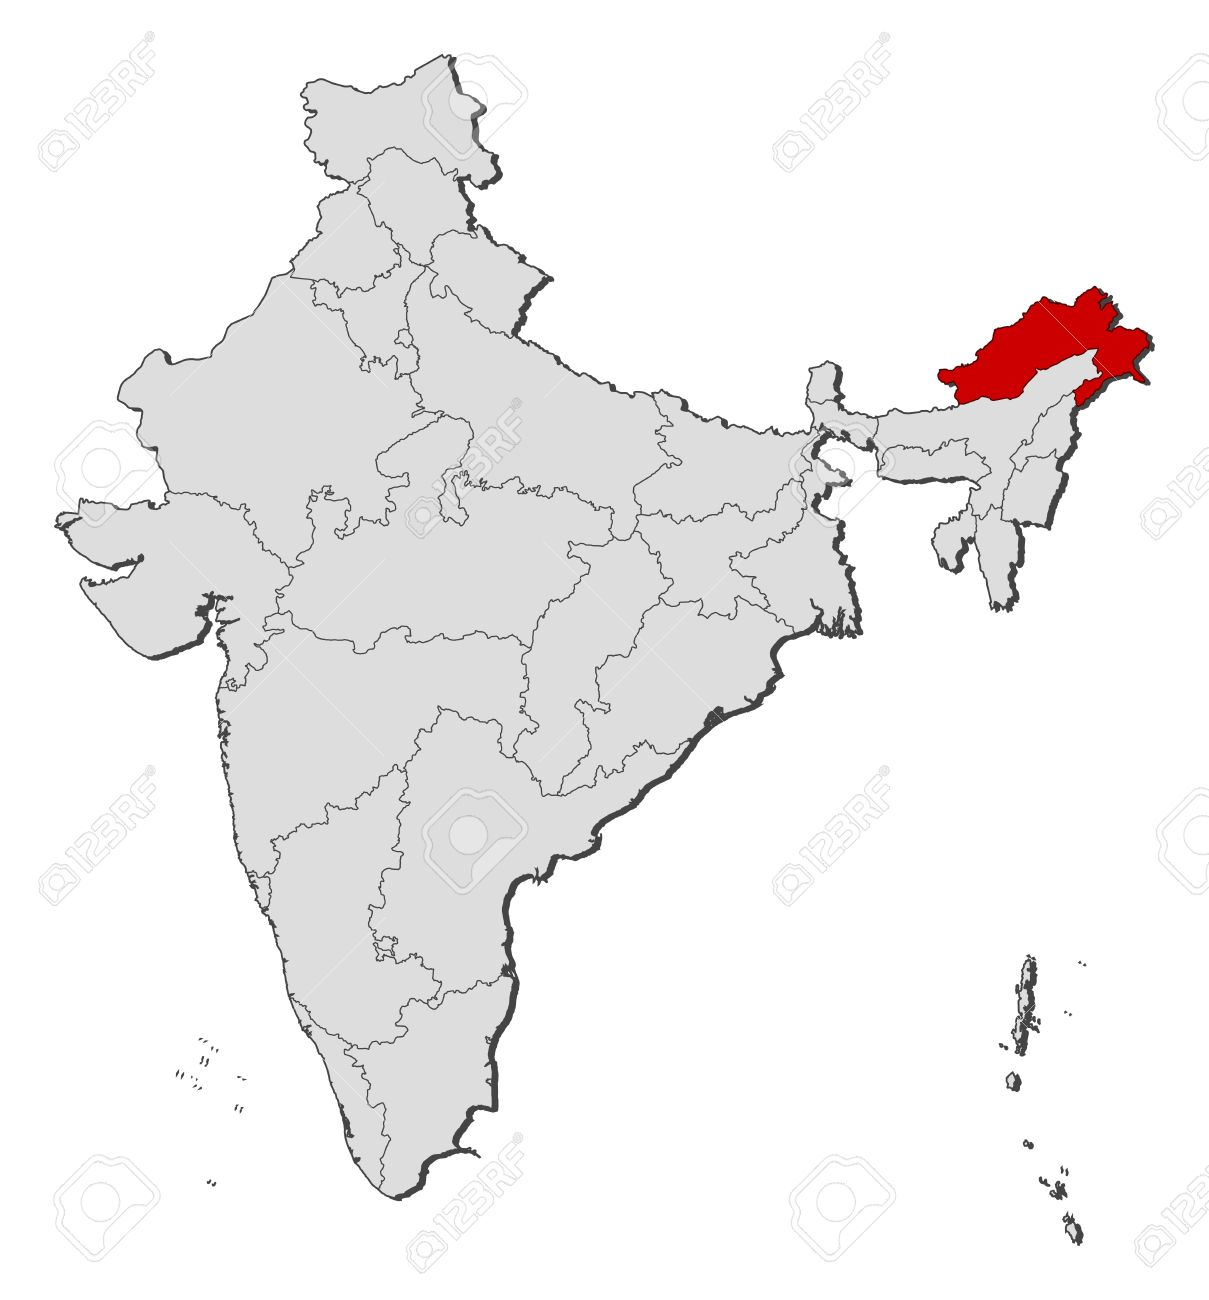 Map Of India Political.Political Map Of India With The Several States Where Arunachal